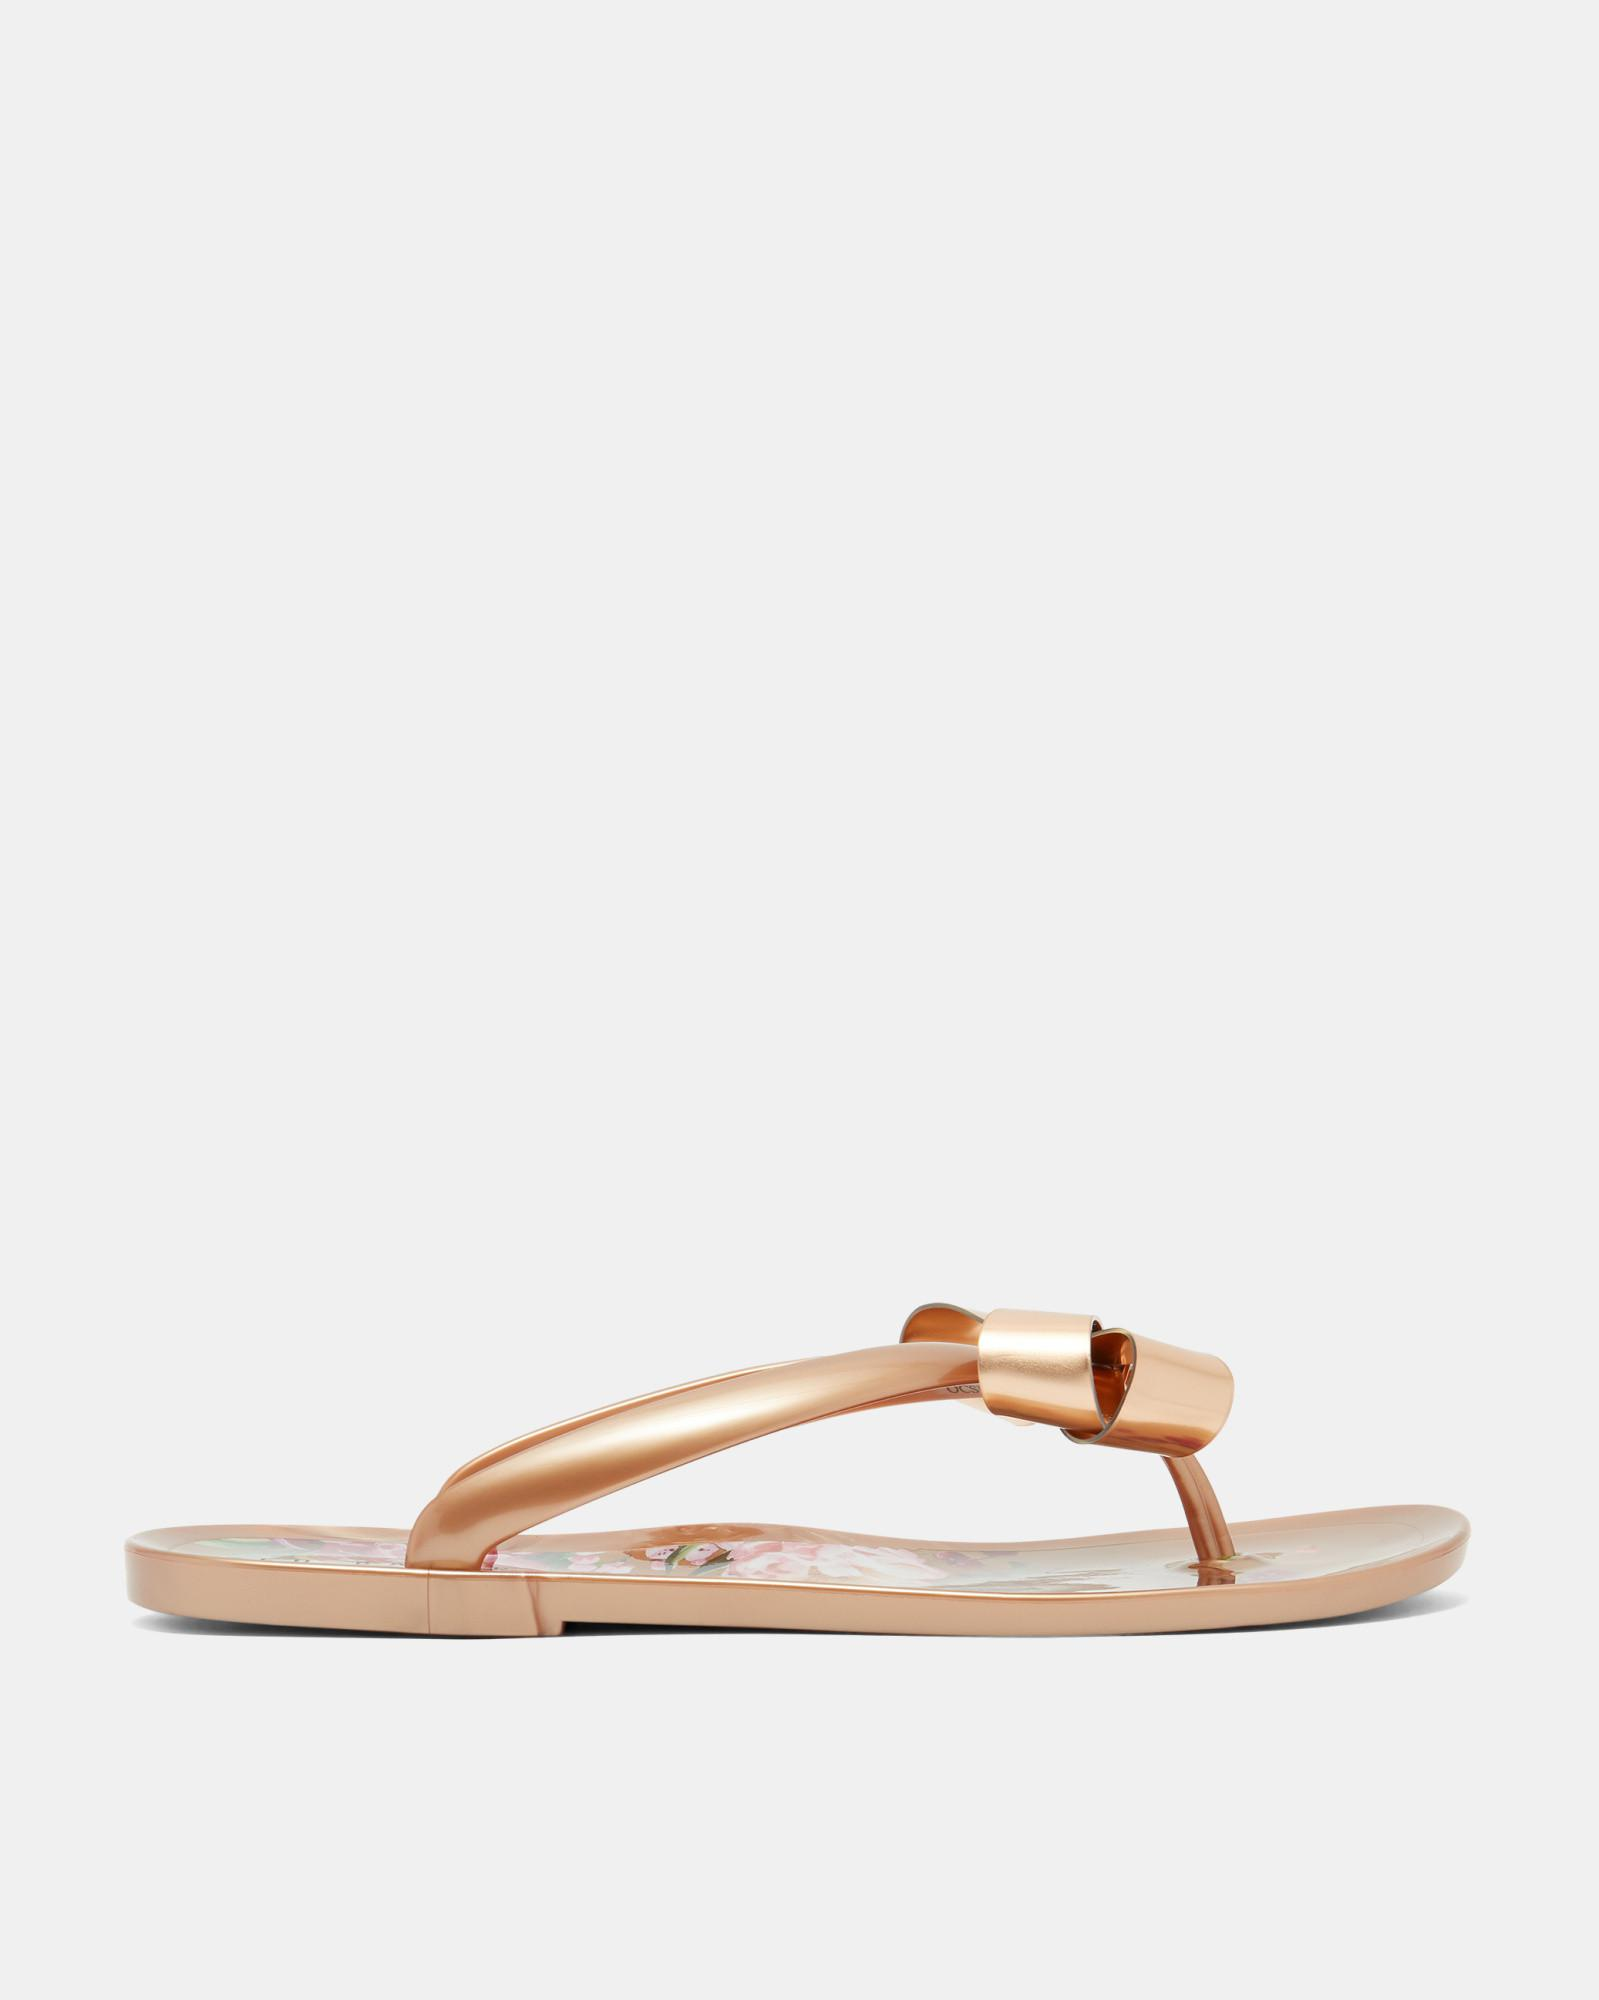 7a2fa756a6ae6 Ted Baker Printed Sole Flip Flop in Pink - Lyst